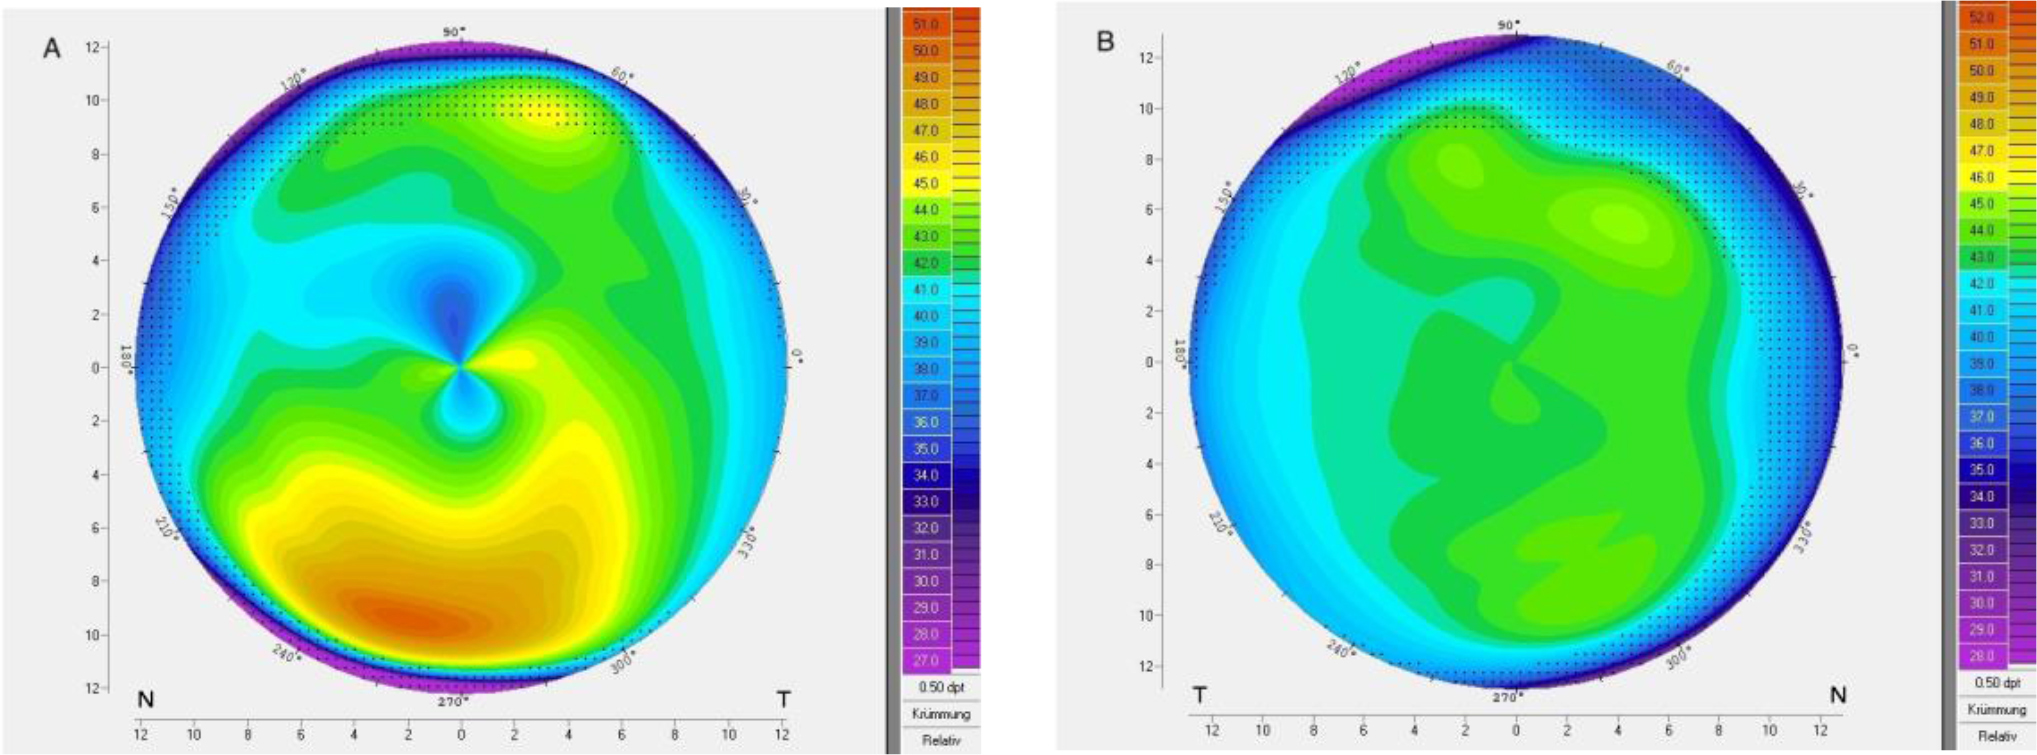 Corneal topography of patient 8 with very asymmetric keratoconus showing (A) ectasia and (B) regular topography in the fellow eye.